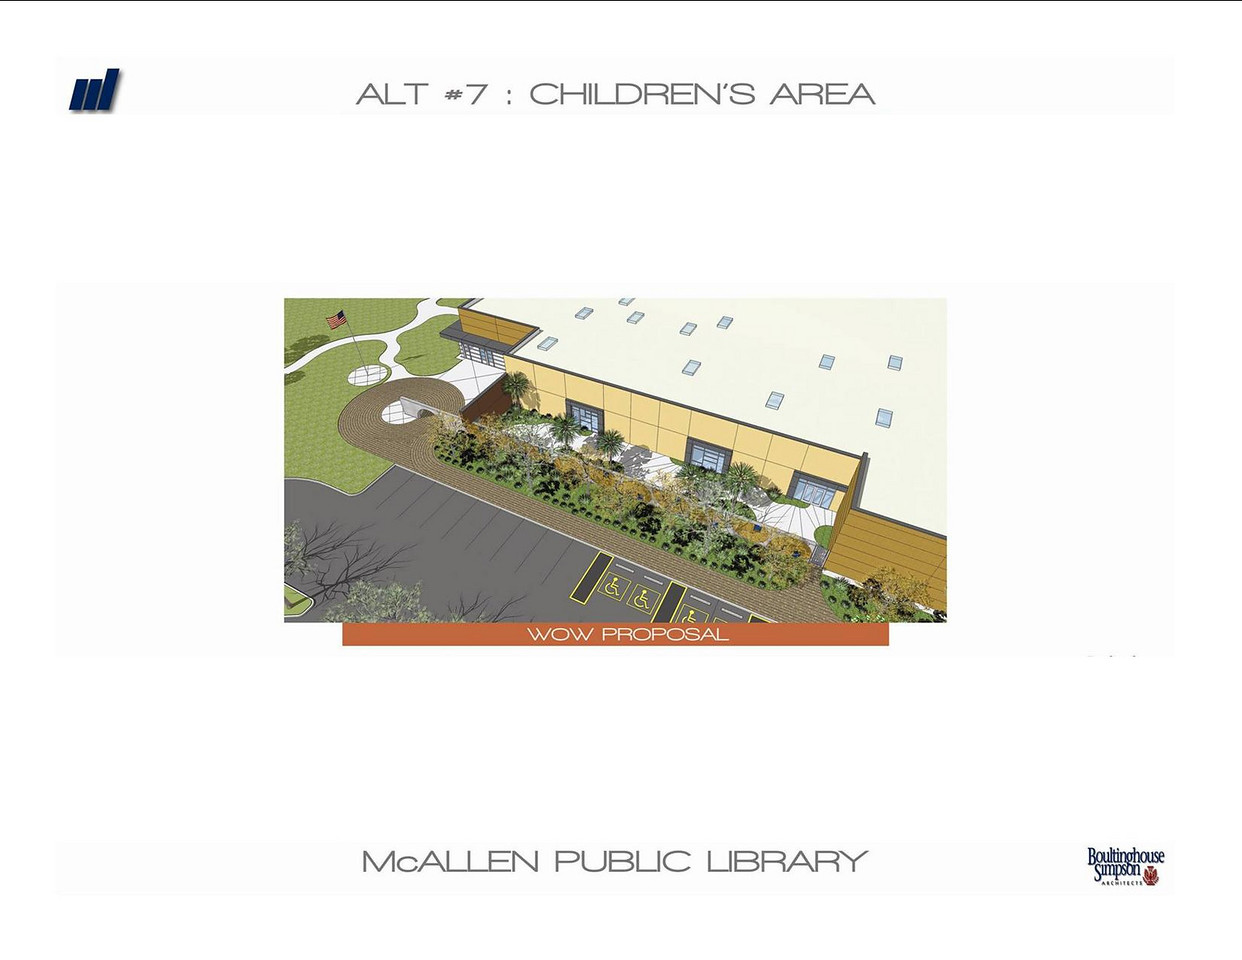 Overhead exterior view of the new Main Library's children's area.